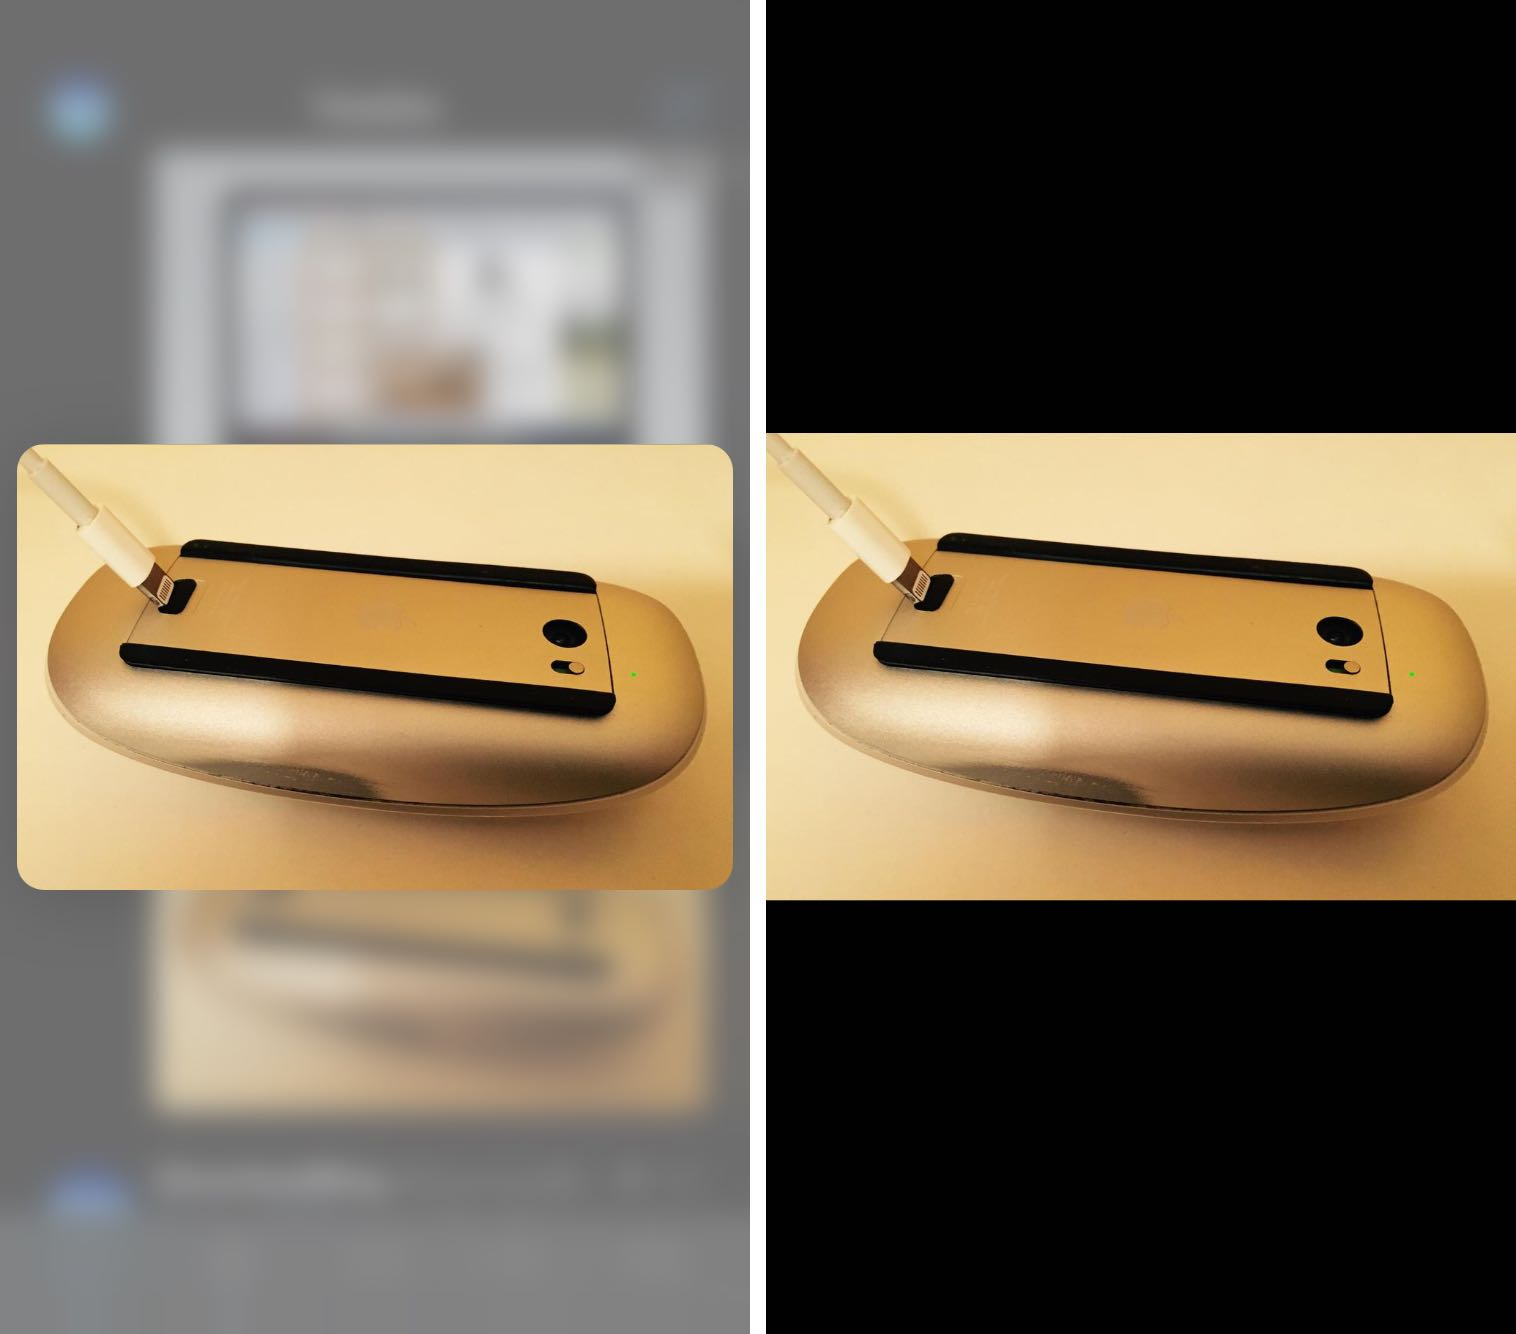 Tweetbot 4.0.1 para iOS 3D Touch iPhone captura de pantalla 004